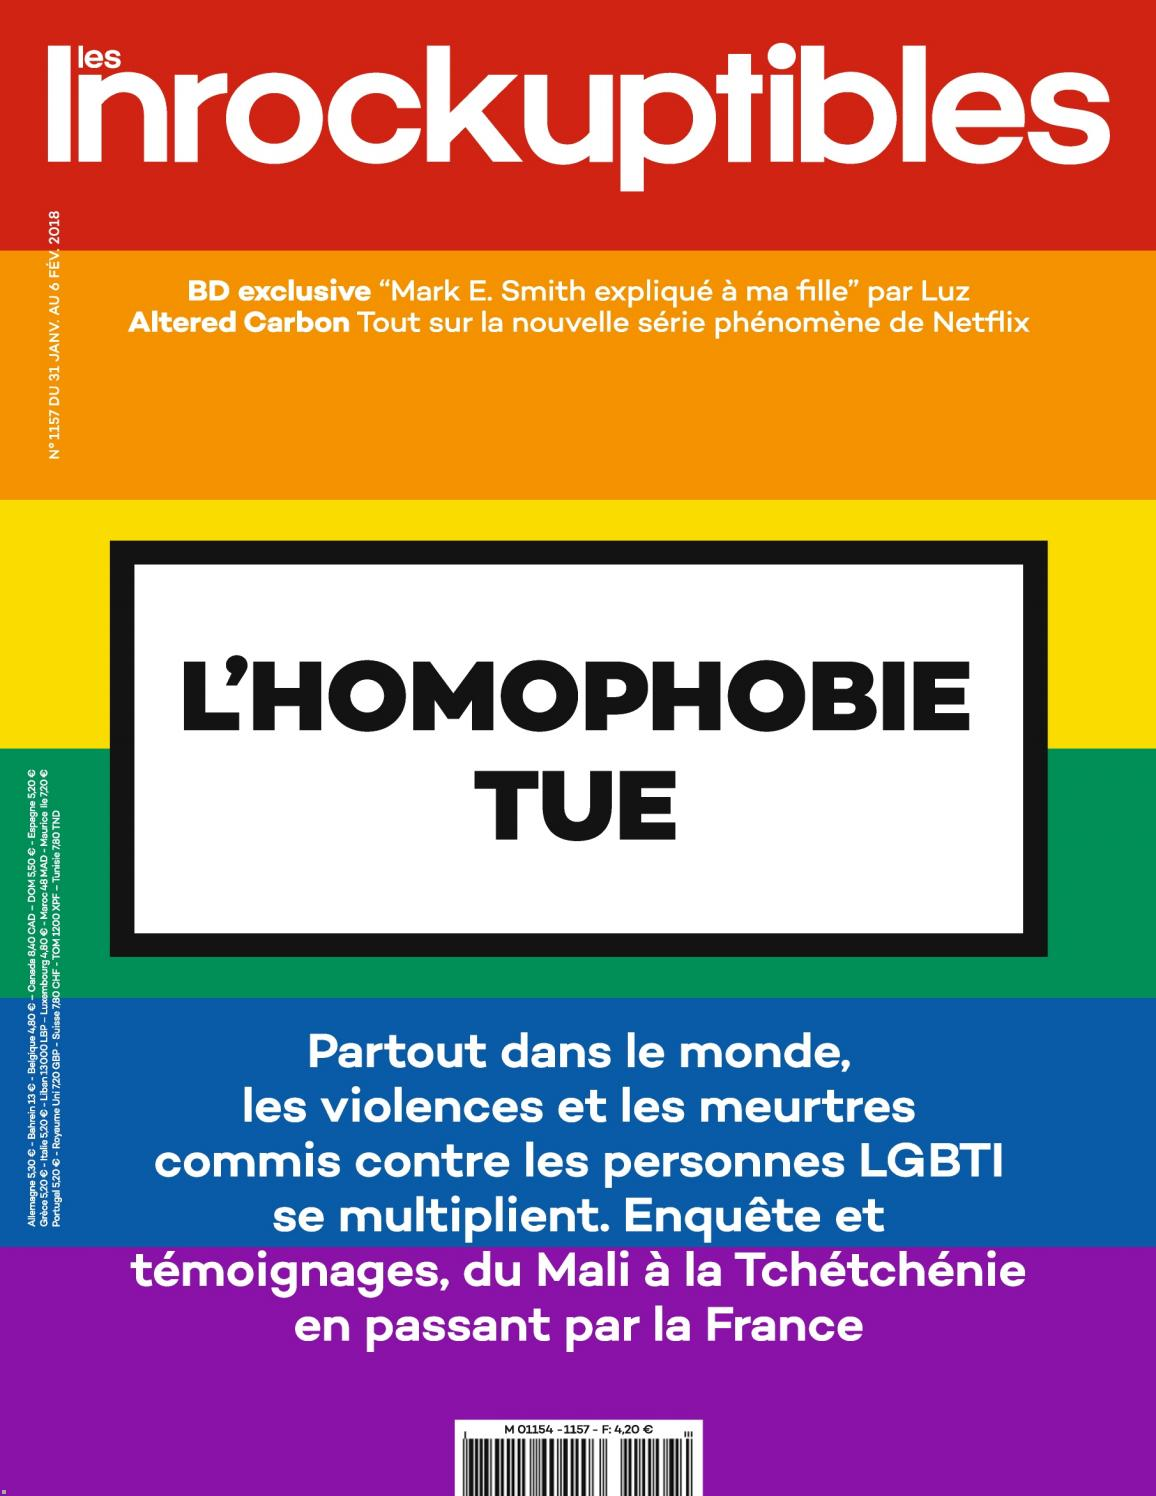 Les inrockuptibles by Yves Mottet - issuu f7aea68eb45